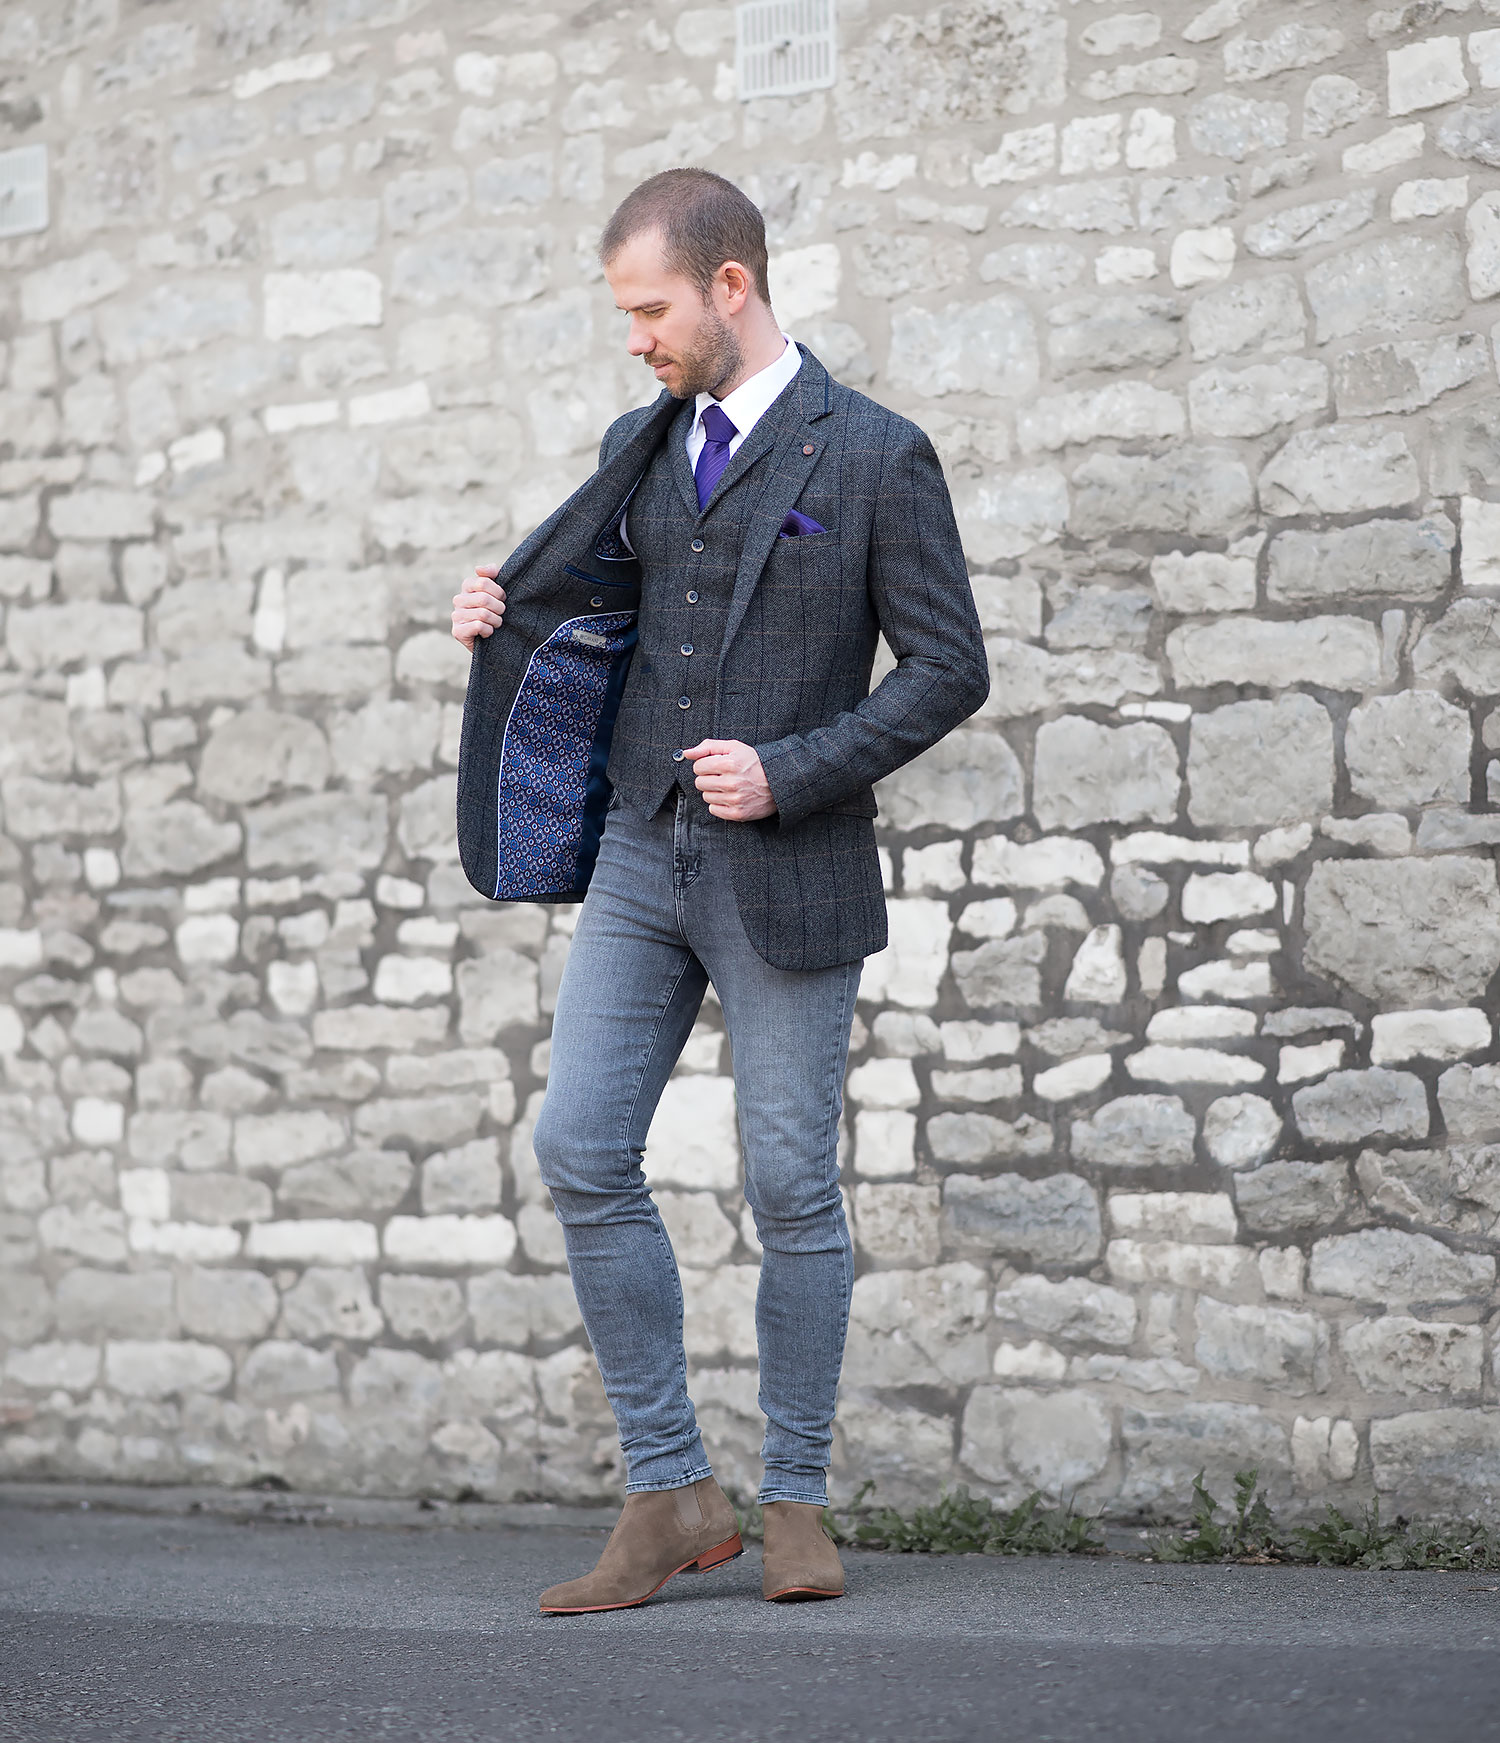 Tweed Suit With J Brand Skinny Jeans Outfit | Your Average Guy